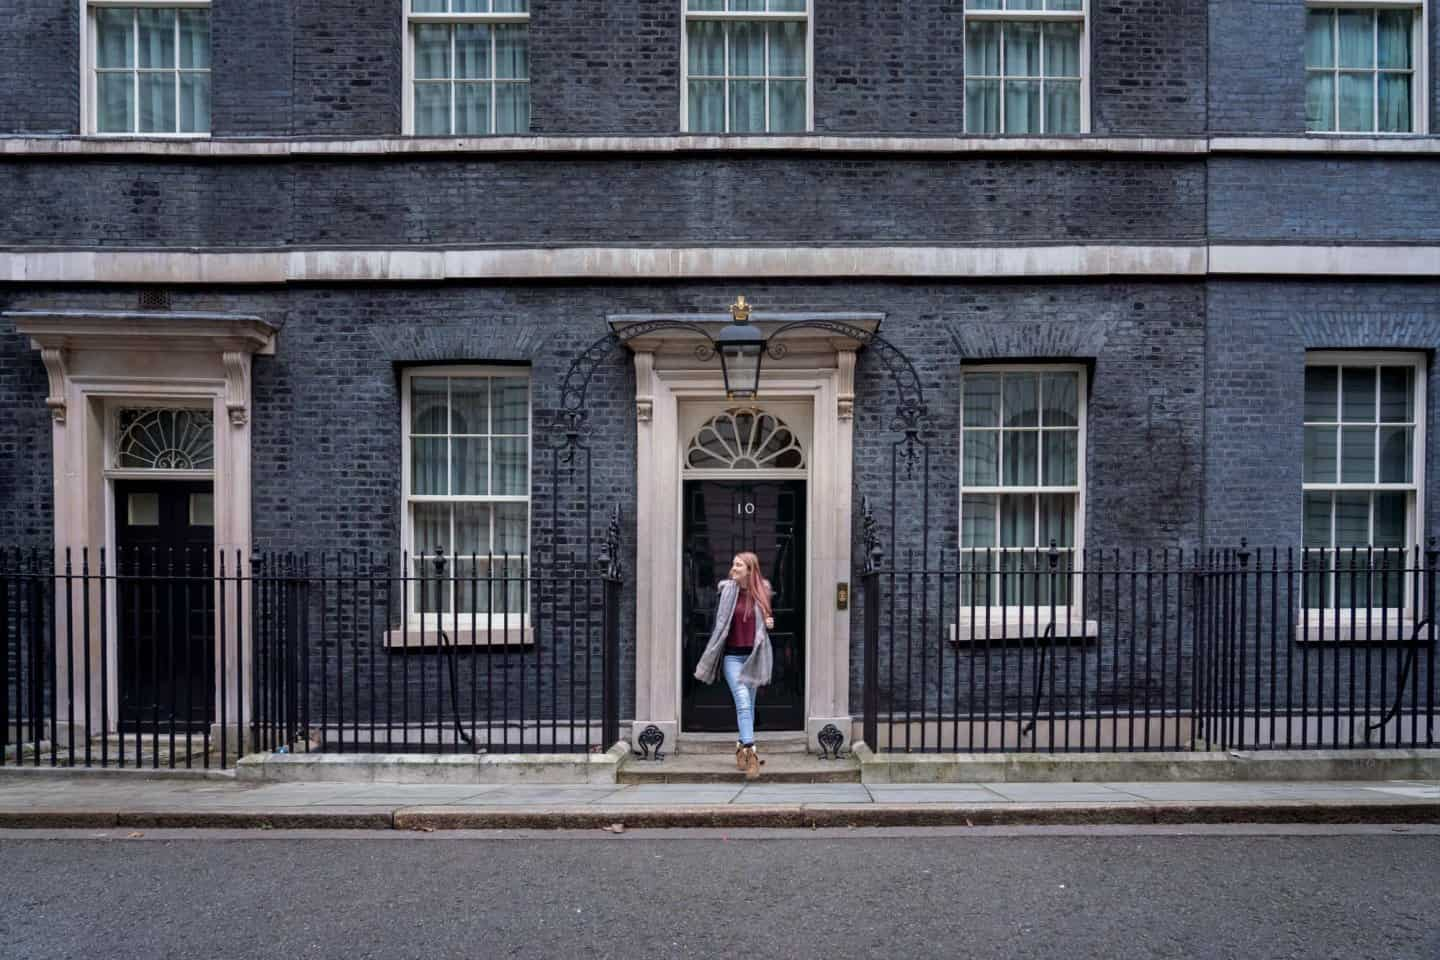 A photo of a girl outside the home of the prime minister - 10 Downing Street